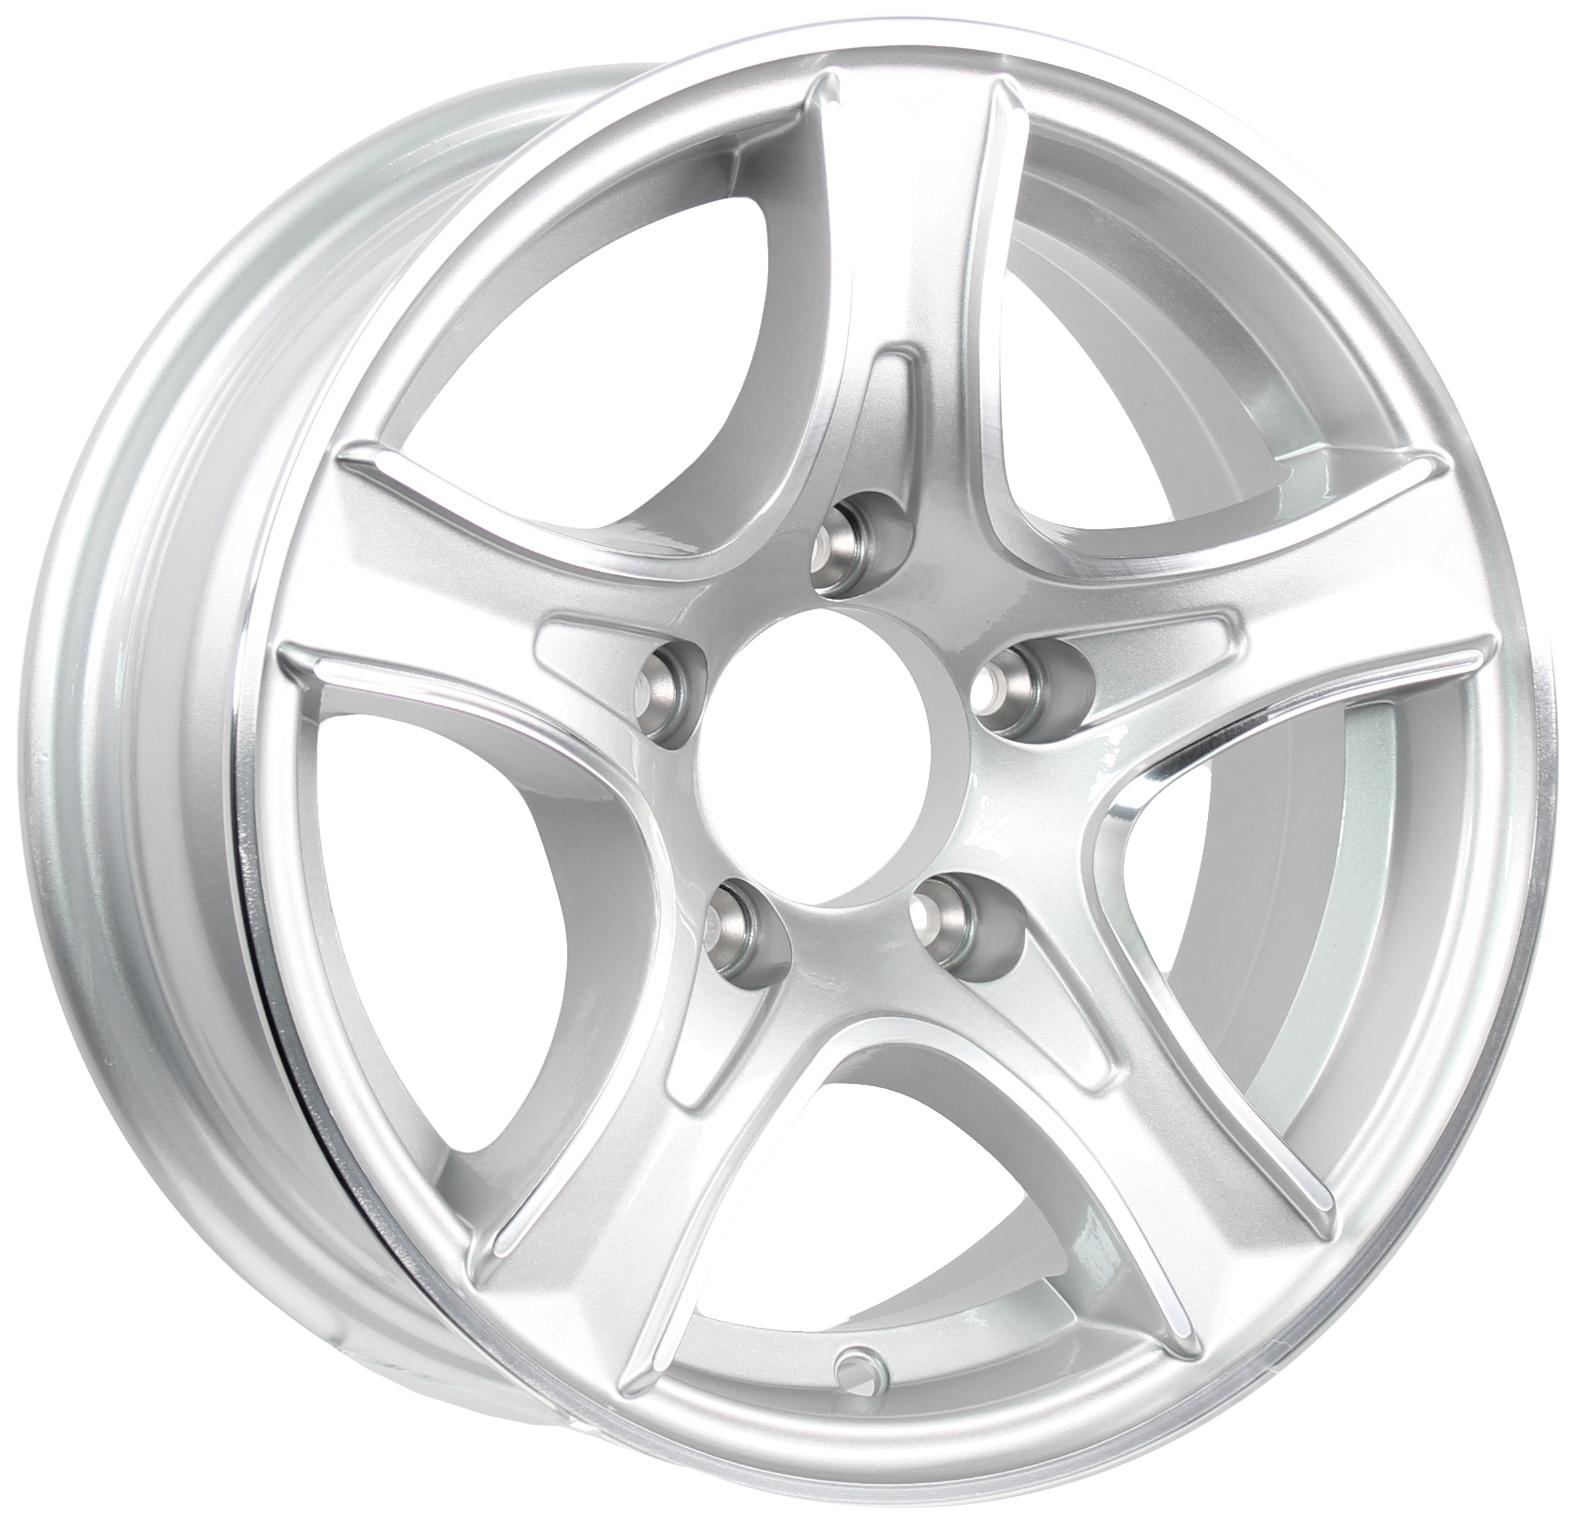 Thoroughbred 14x5.5 5-Lug Silver Aluminum Trailer Wheel Image